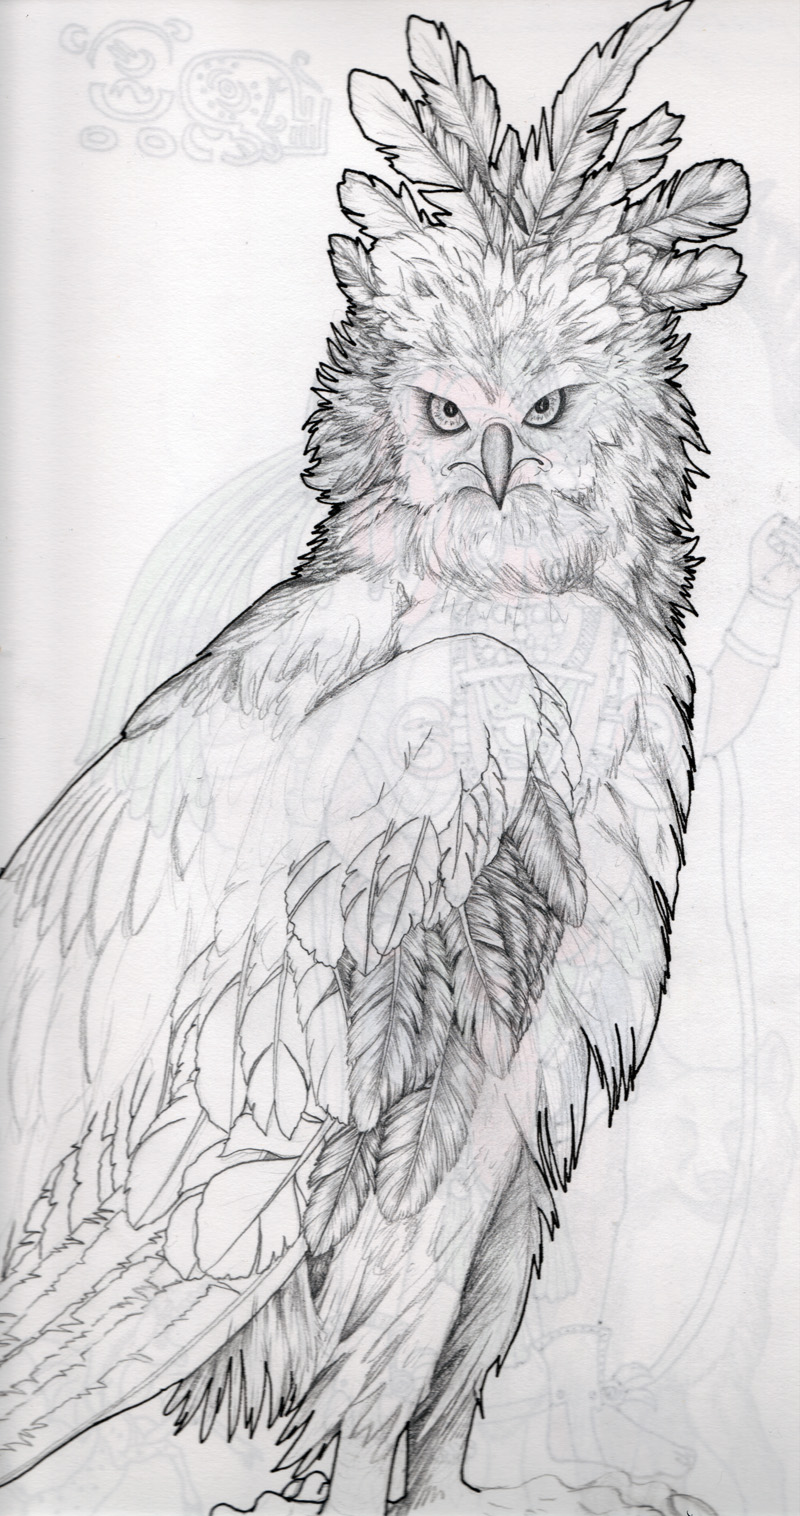 Drawn steller's sea eagle charcoal drawing Harpy Pinterest Eagle Pesquisa vector